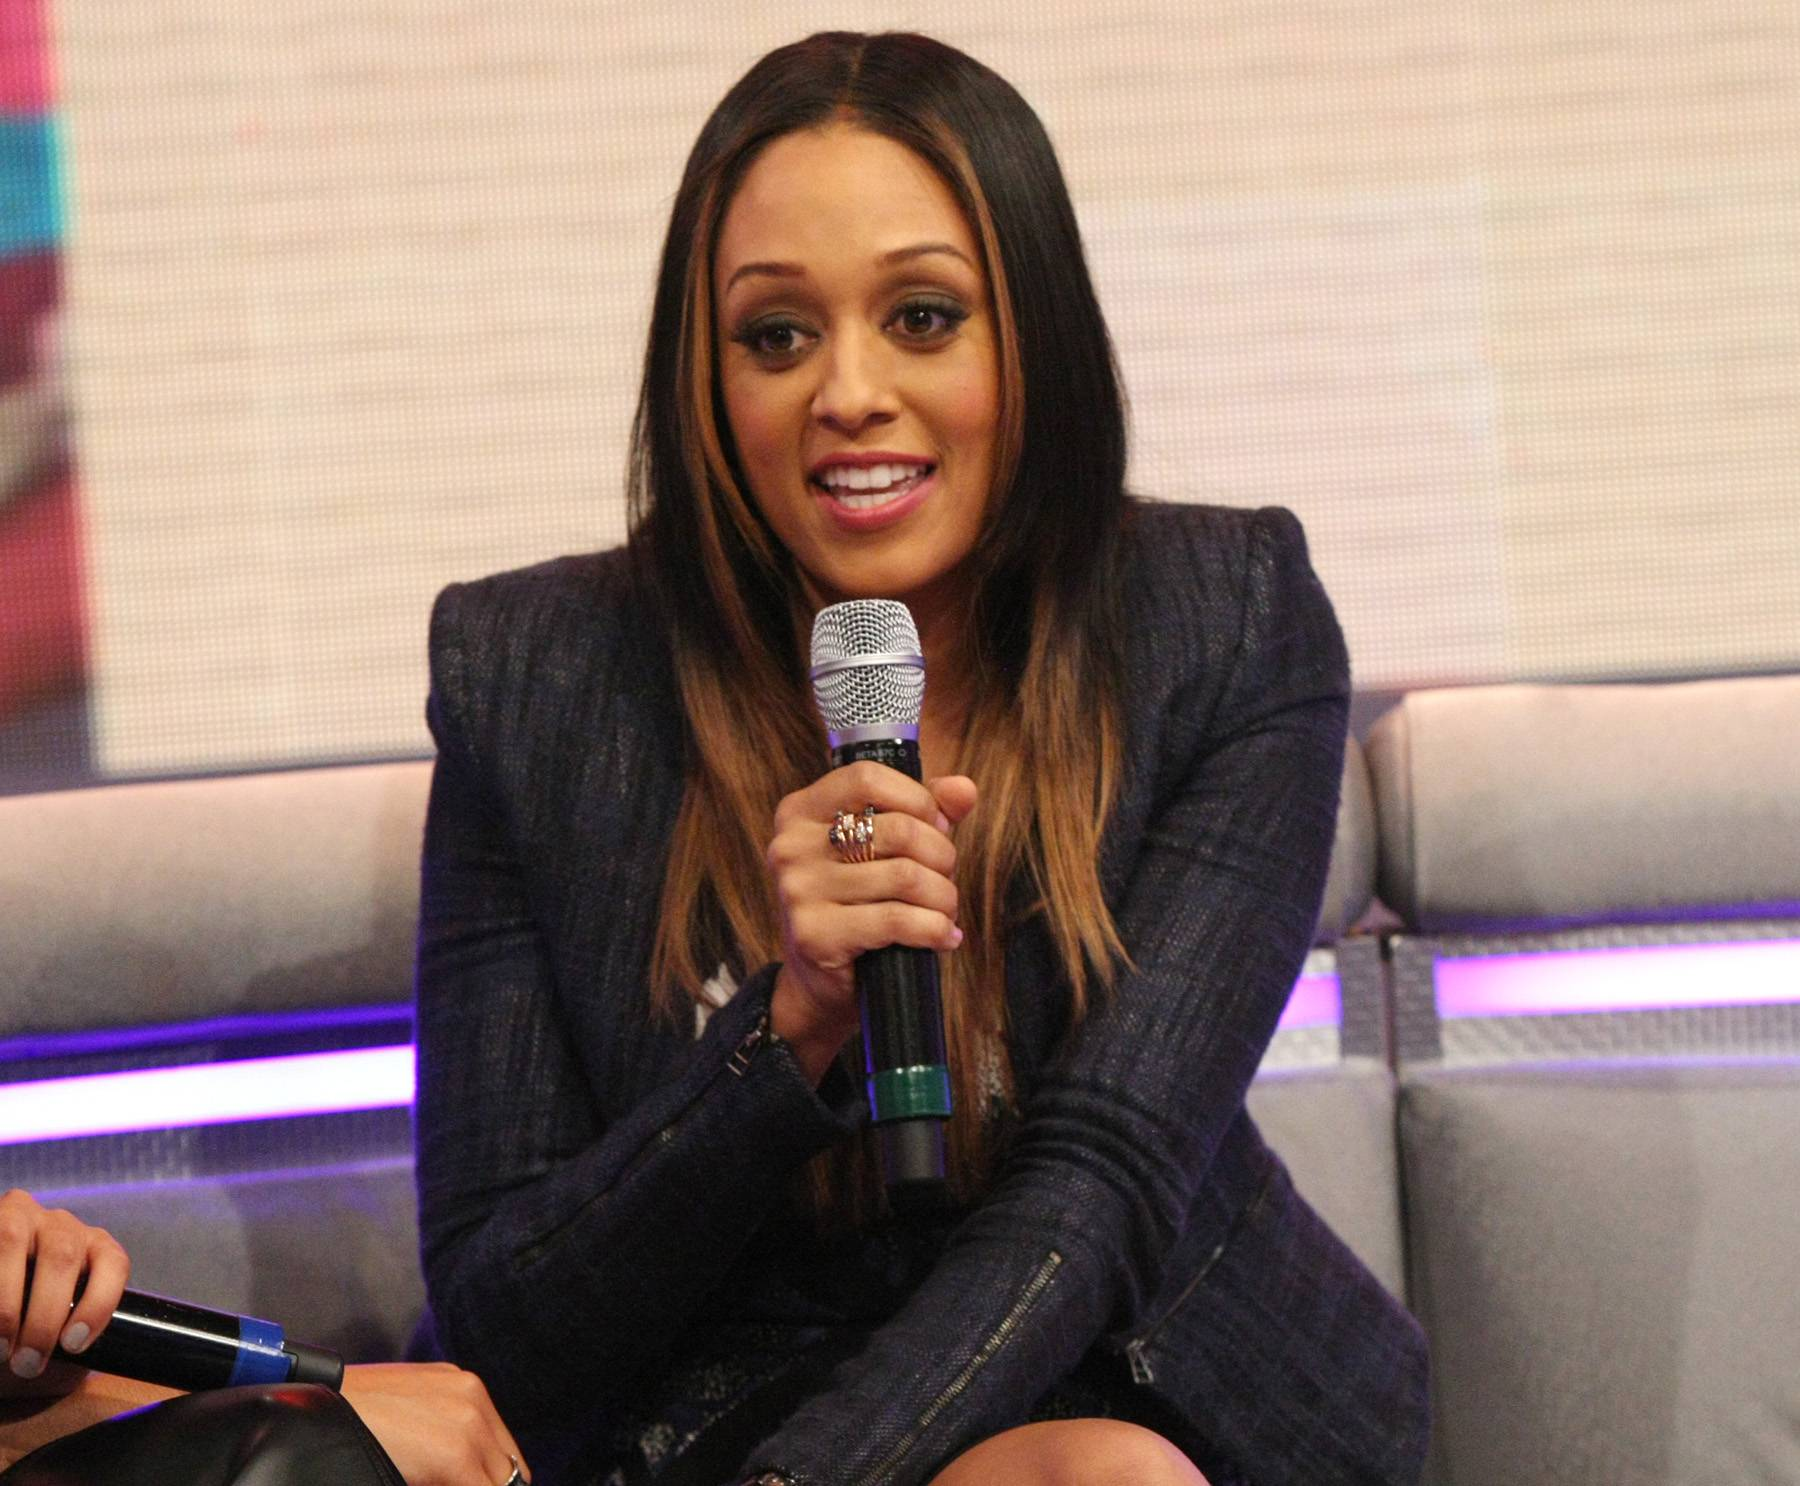 Sister, Sister - Actress Tia Mowry-Hardrict on the set of 106. (Photo: Bennett Raglin/BET/Getty Images for BET)